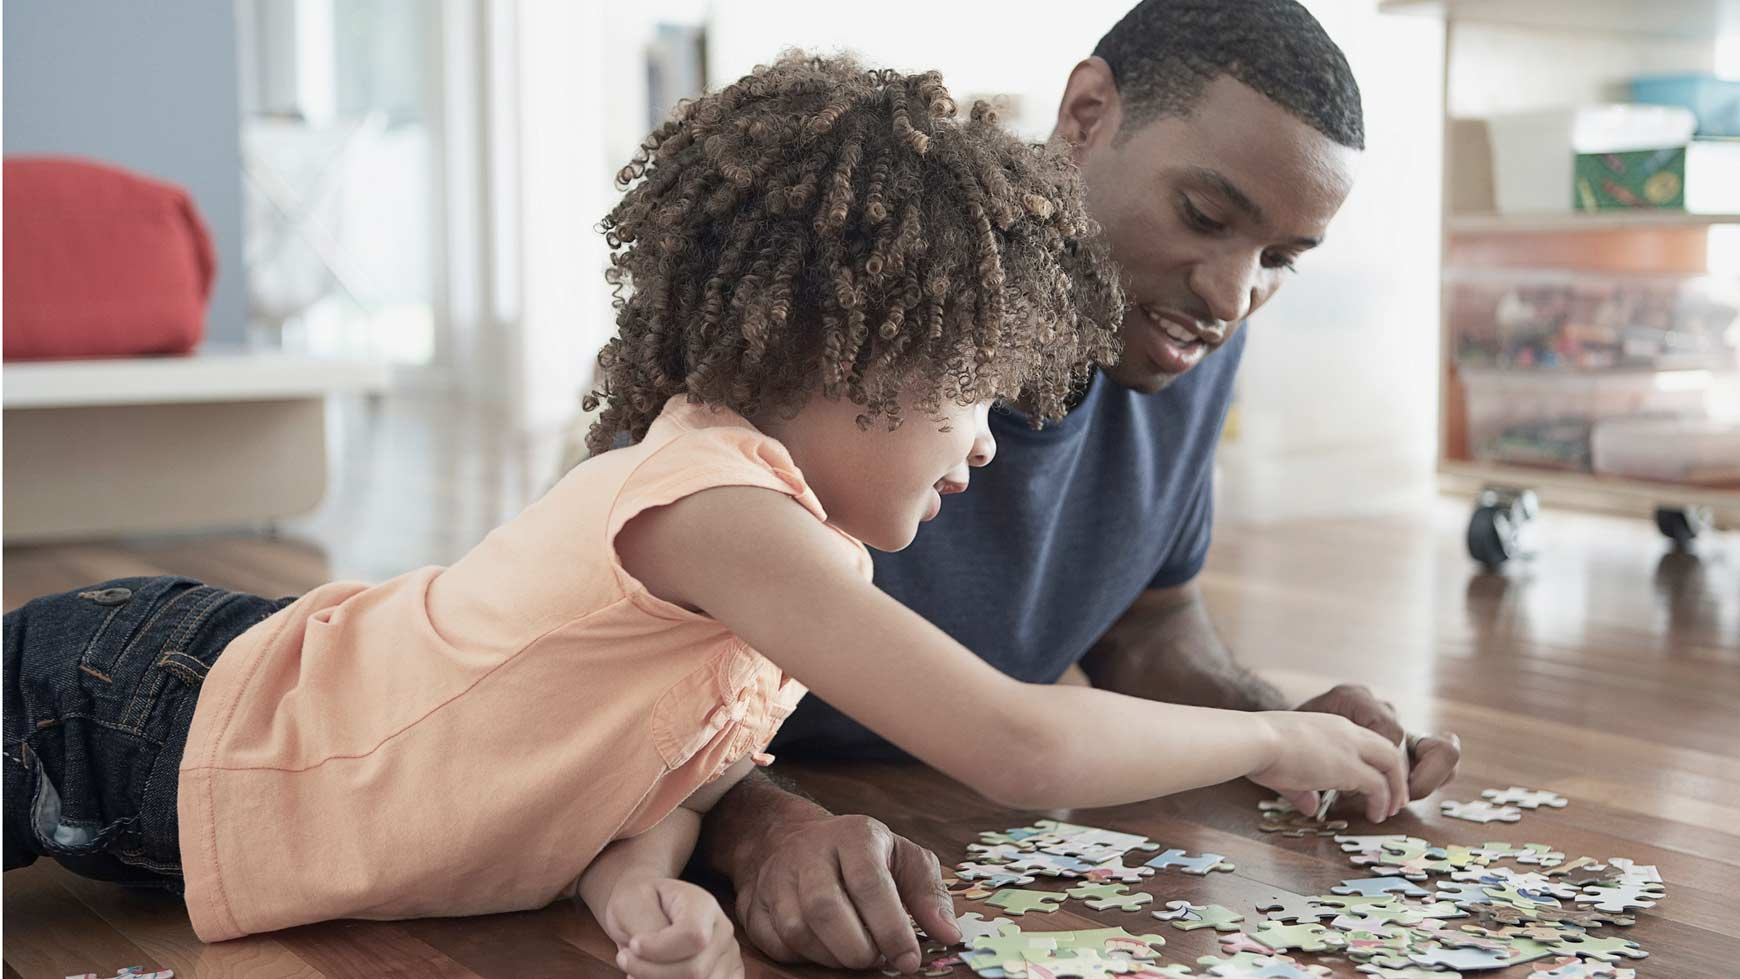 children puzzles to train about focus and patience